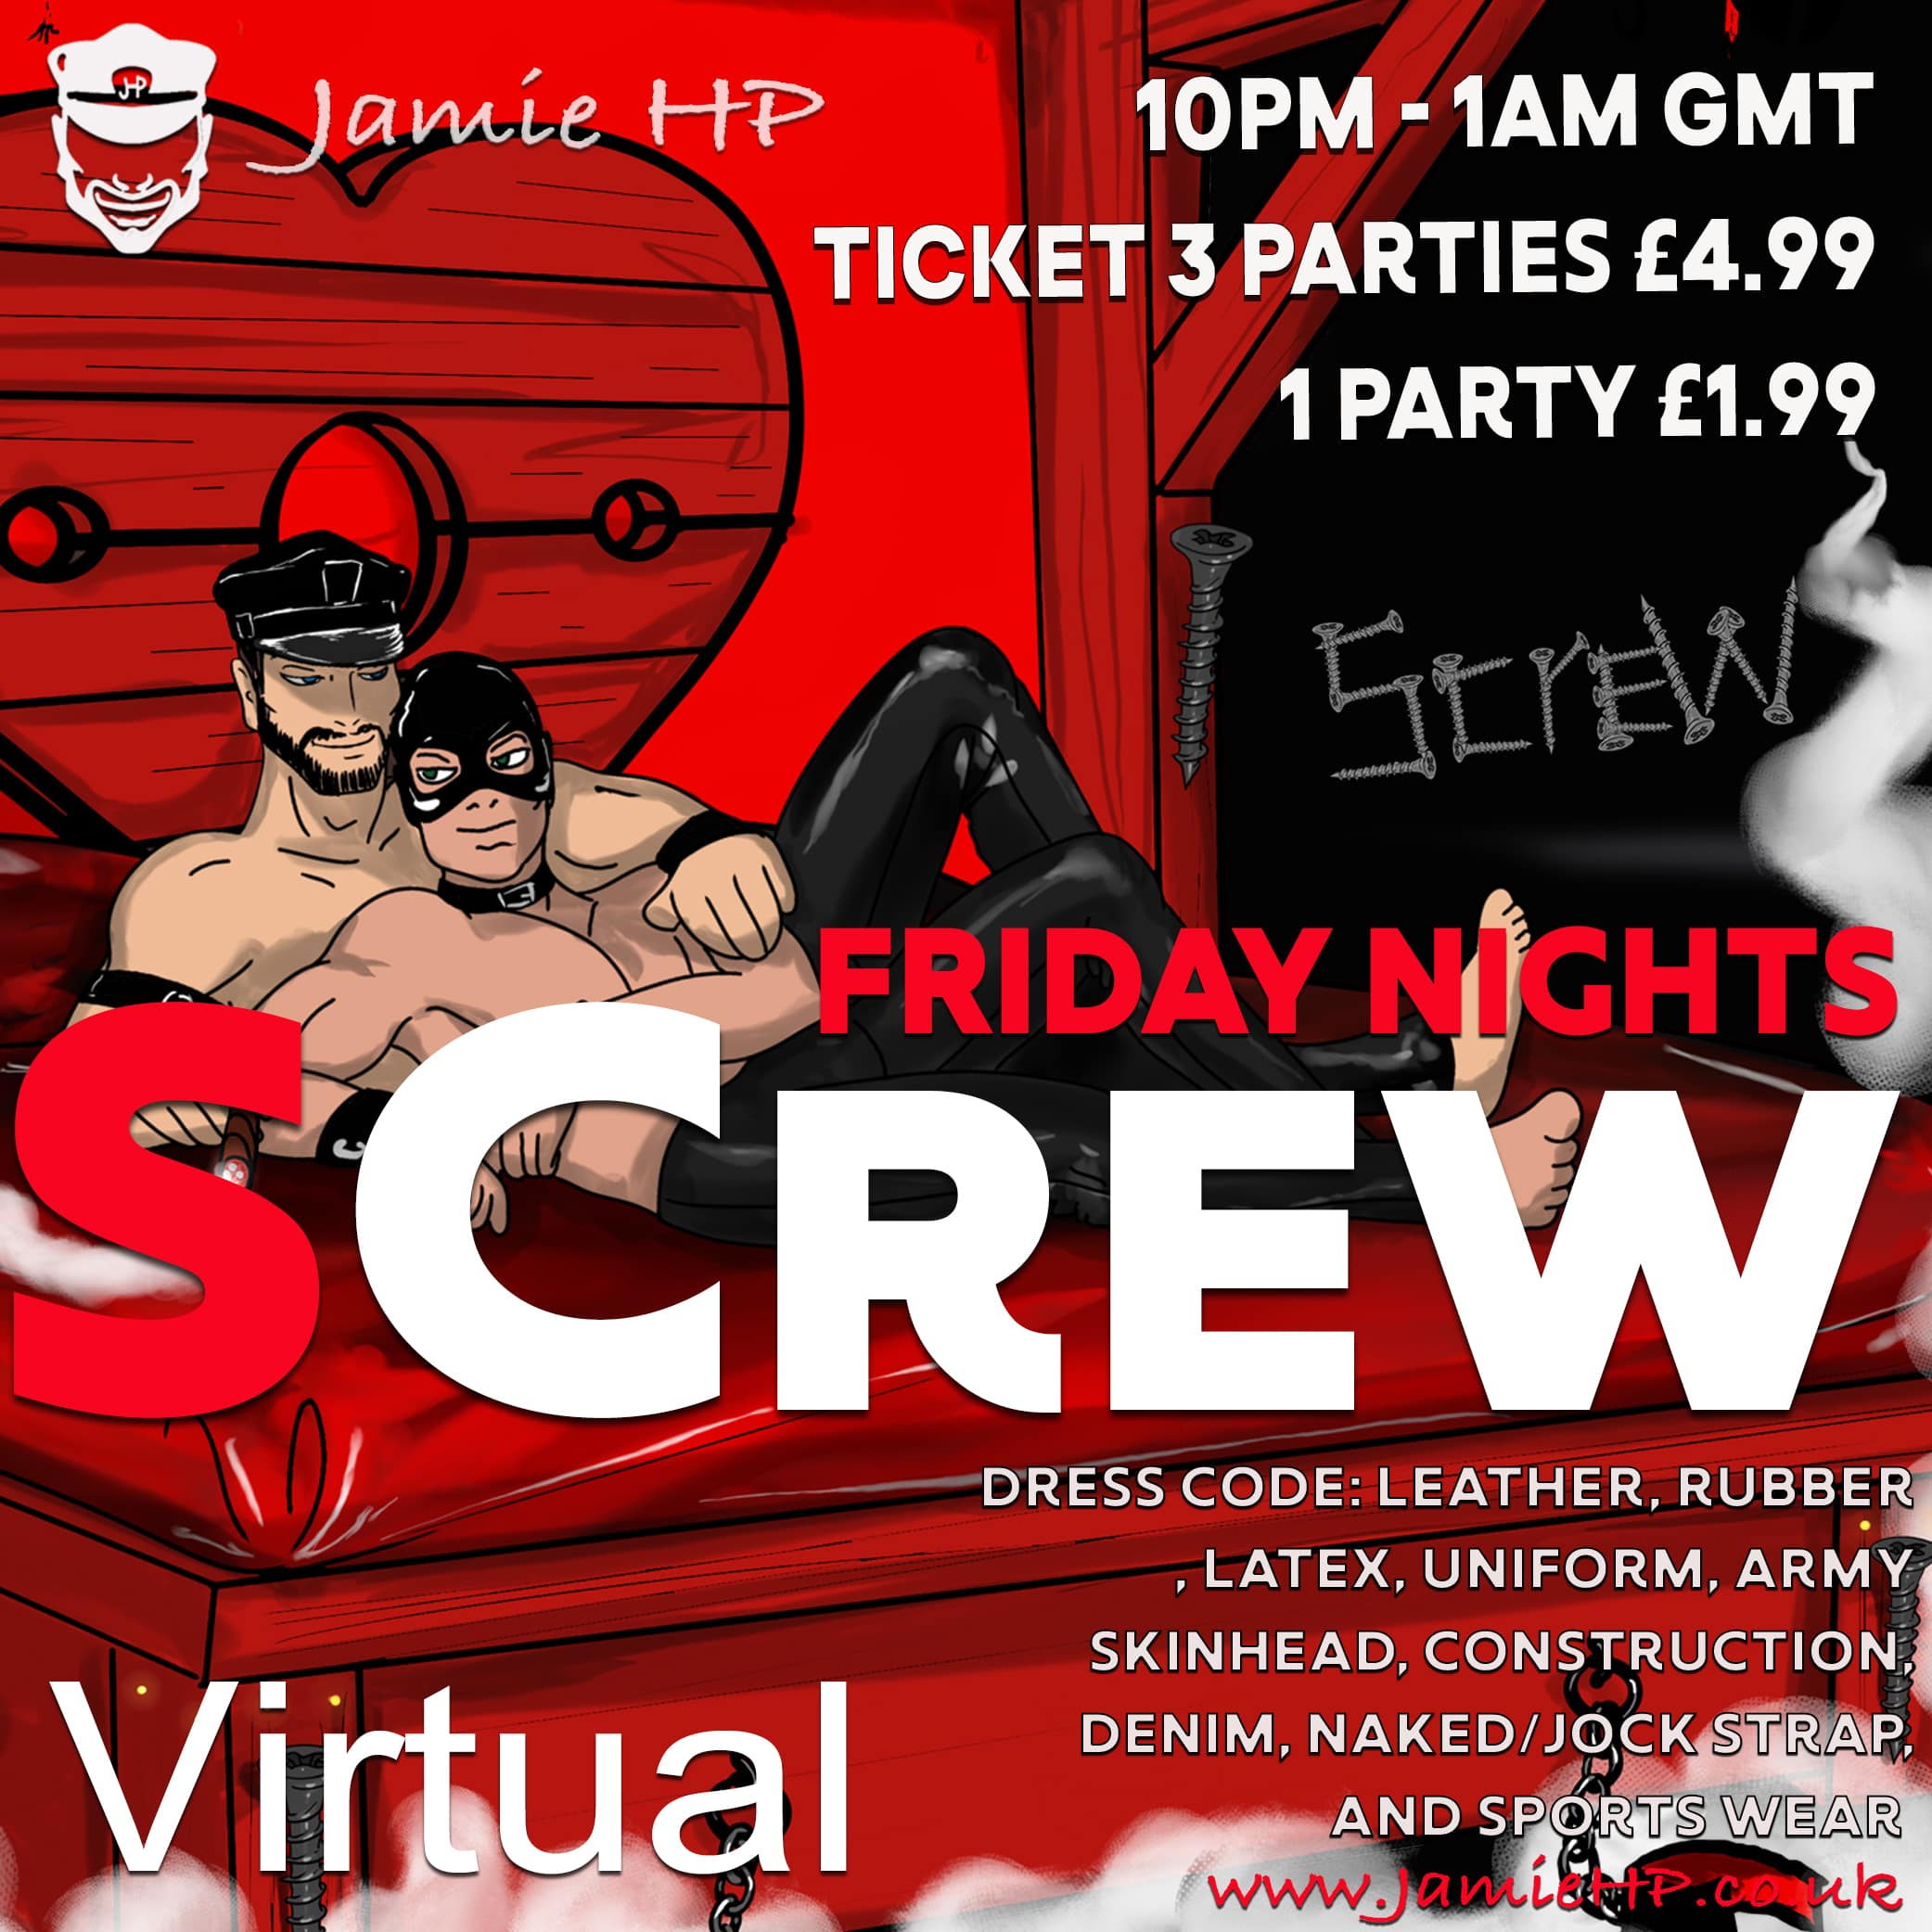 https://www.outsavvy.com/event/4480/virtual-screw-easter-friday-tickets